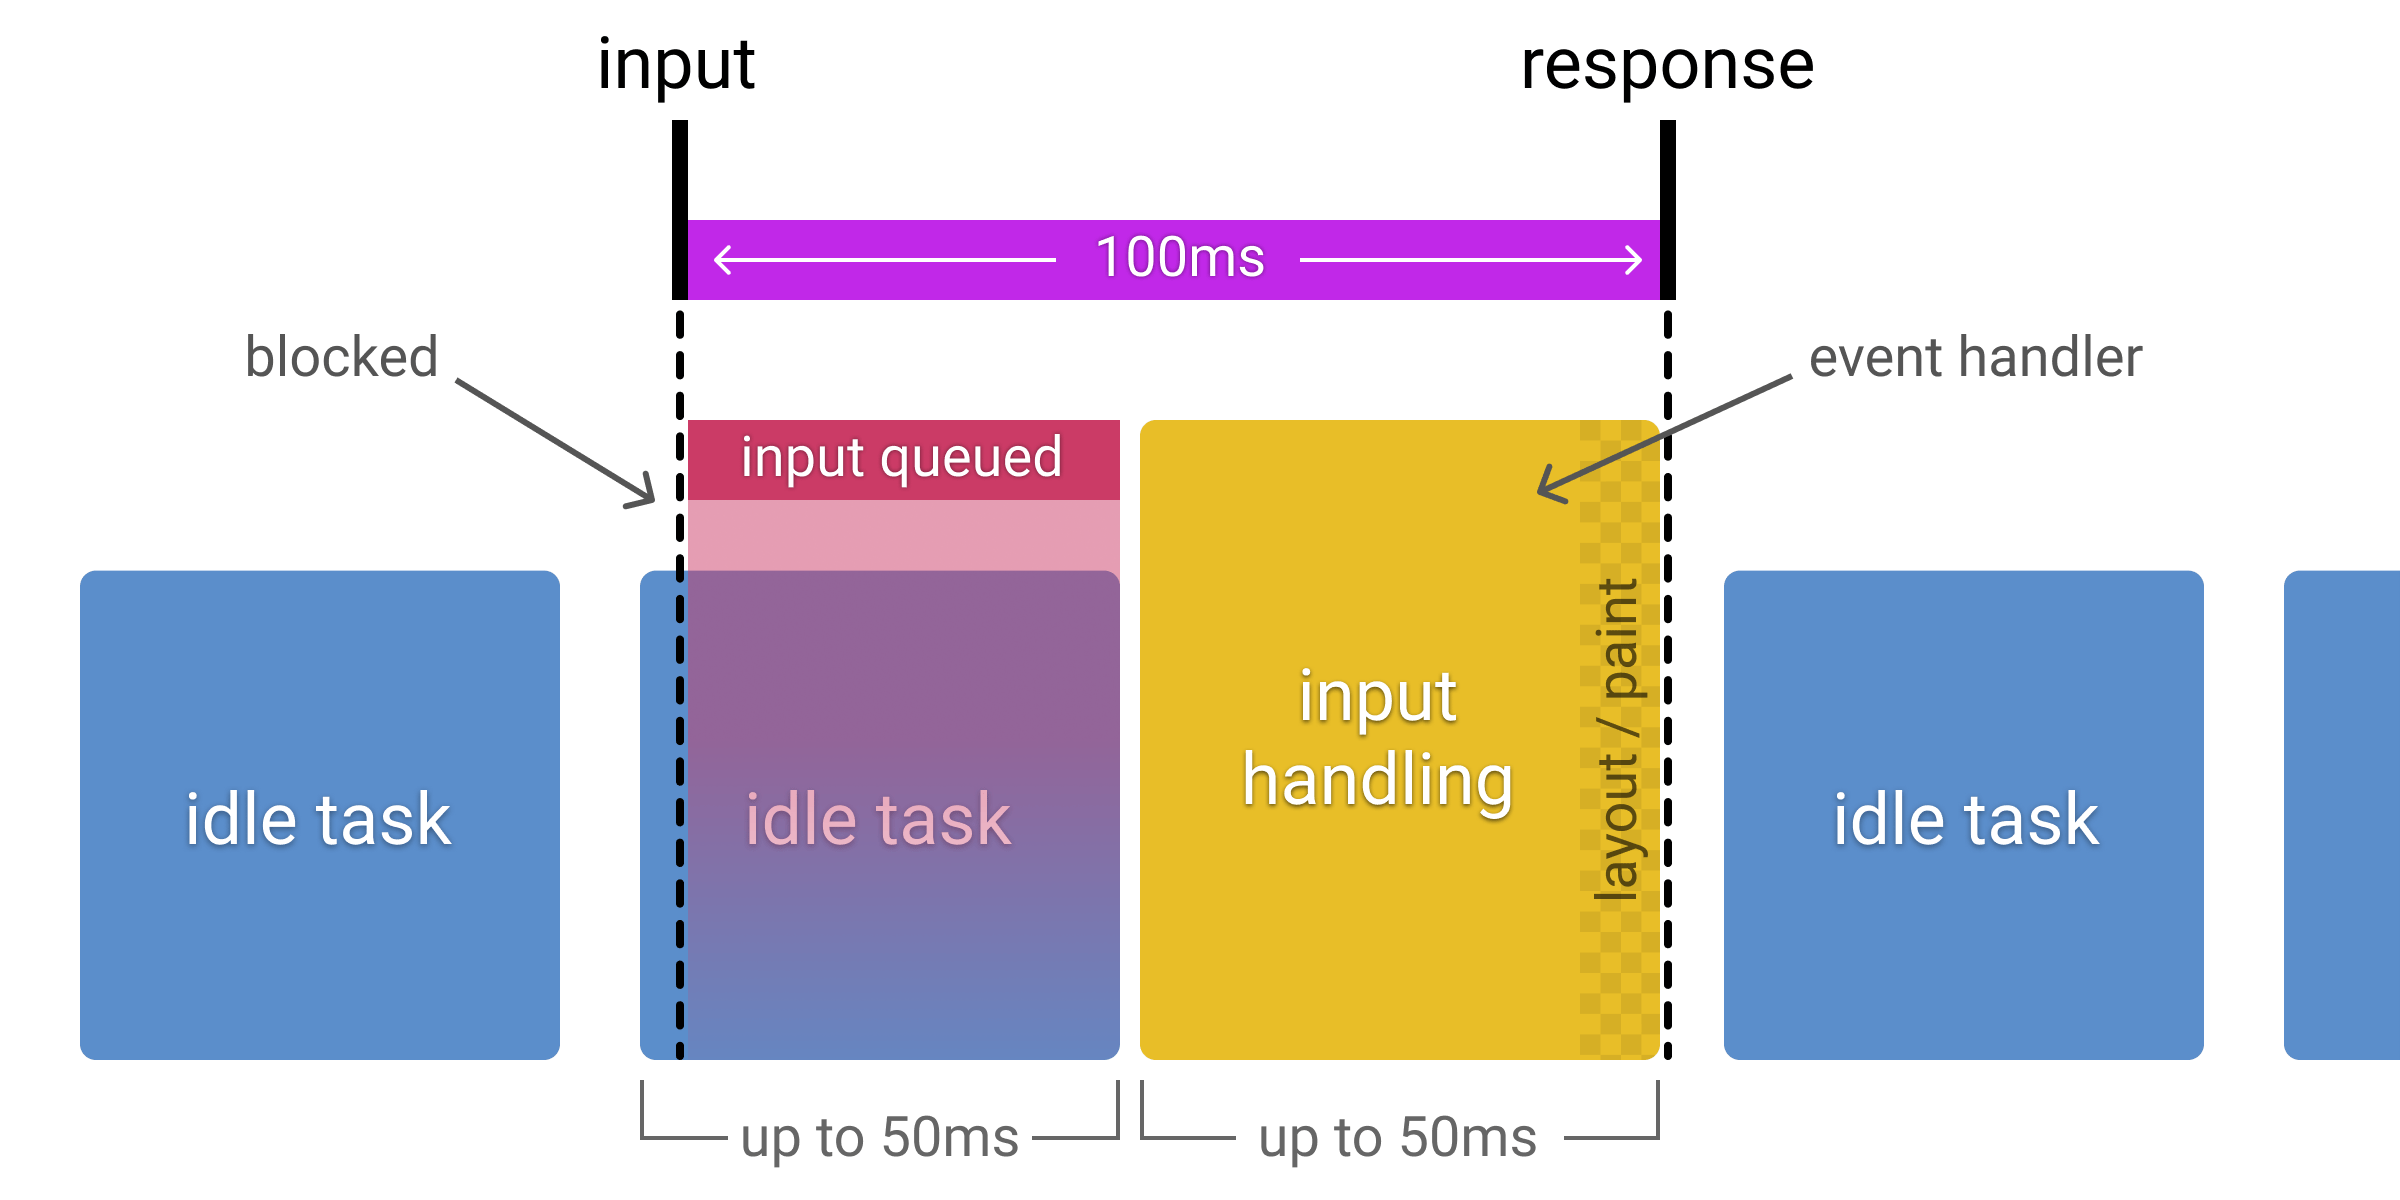 Diagram showing how input received during an idle task is queued, reducing available input processing time to 50ms